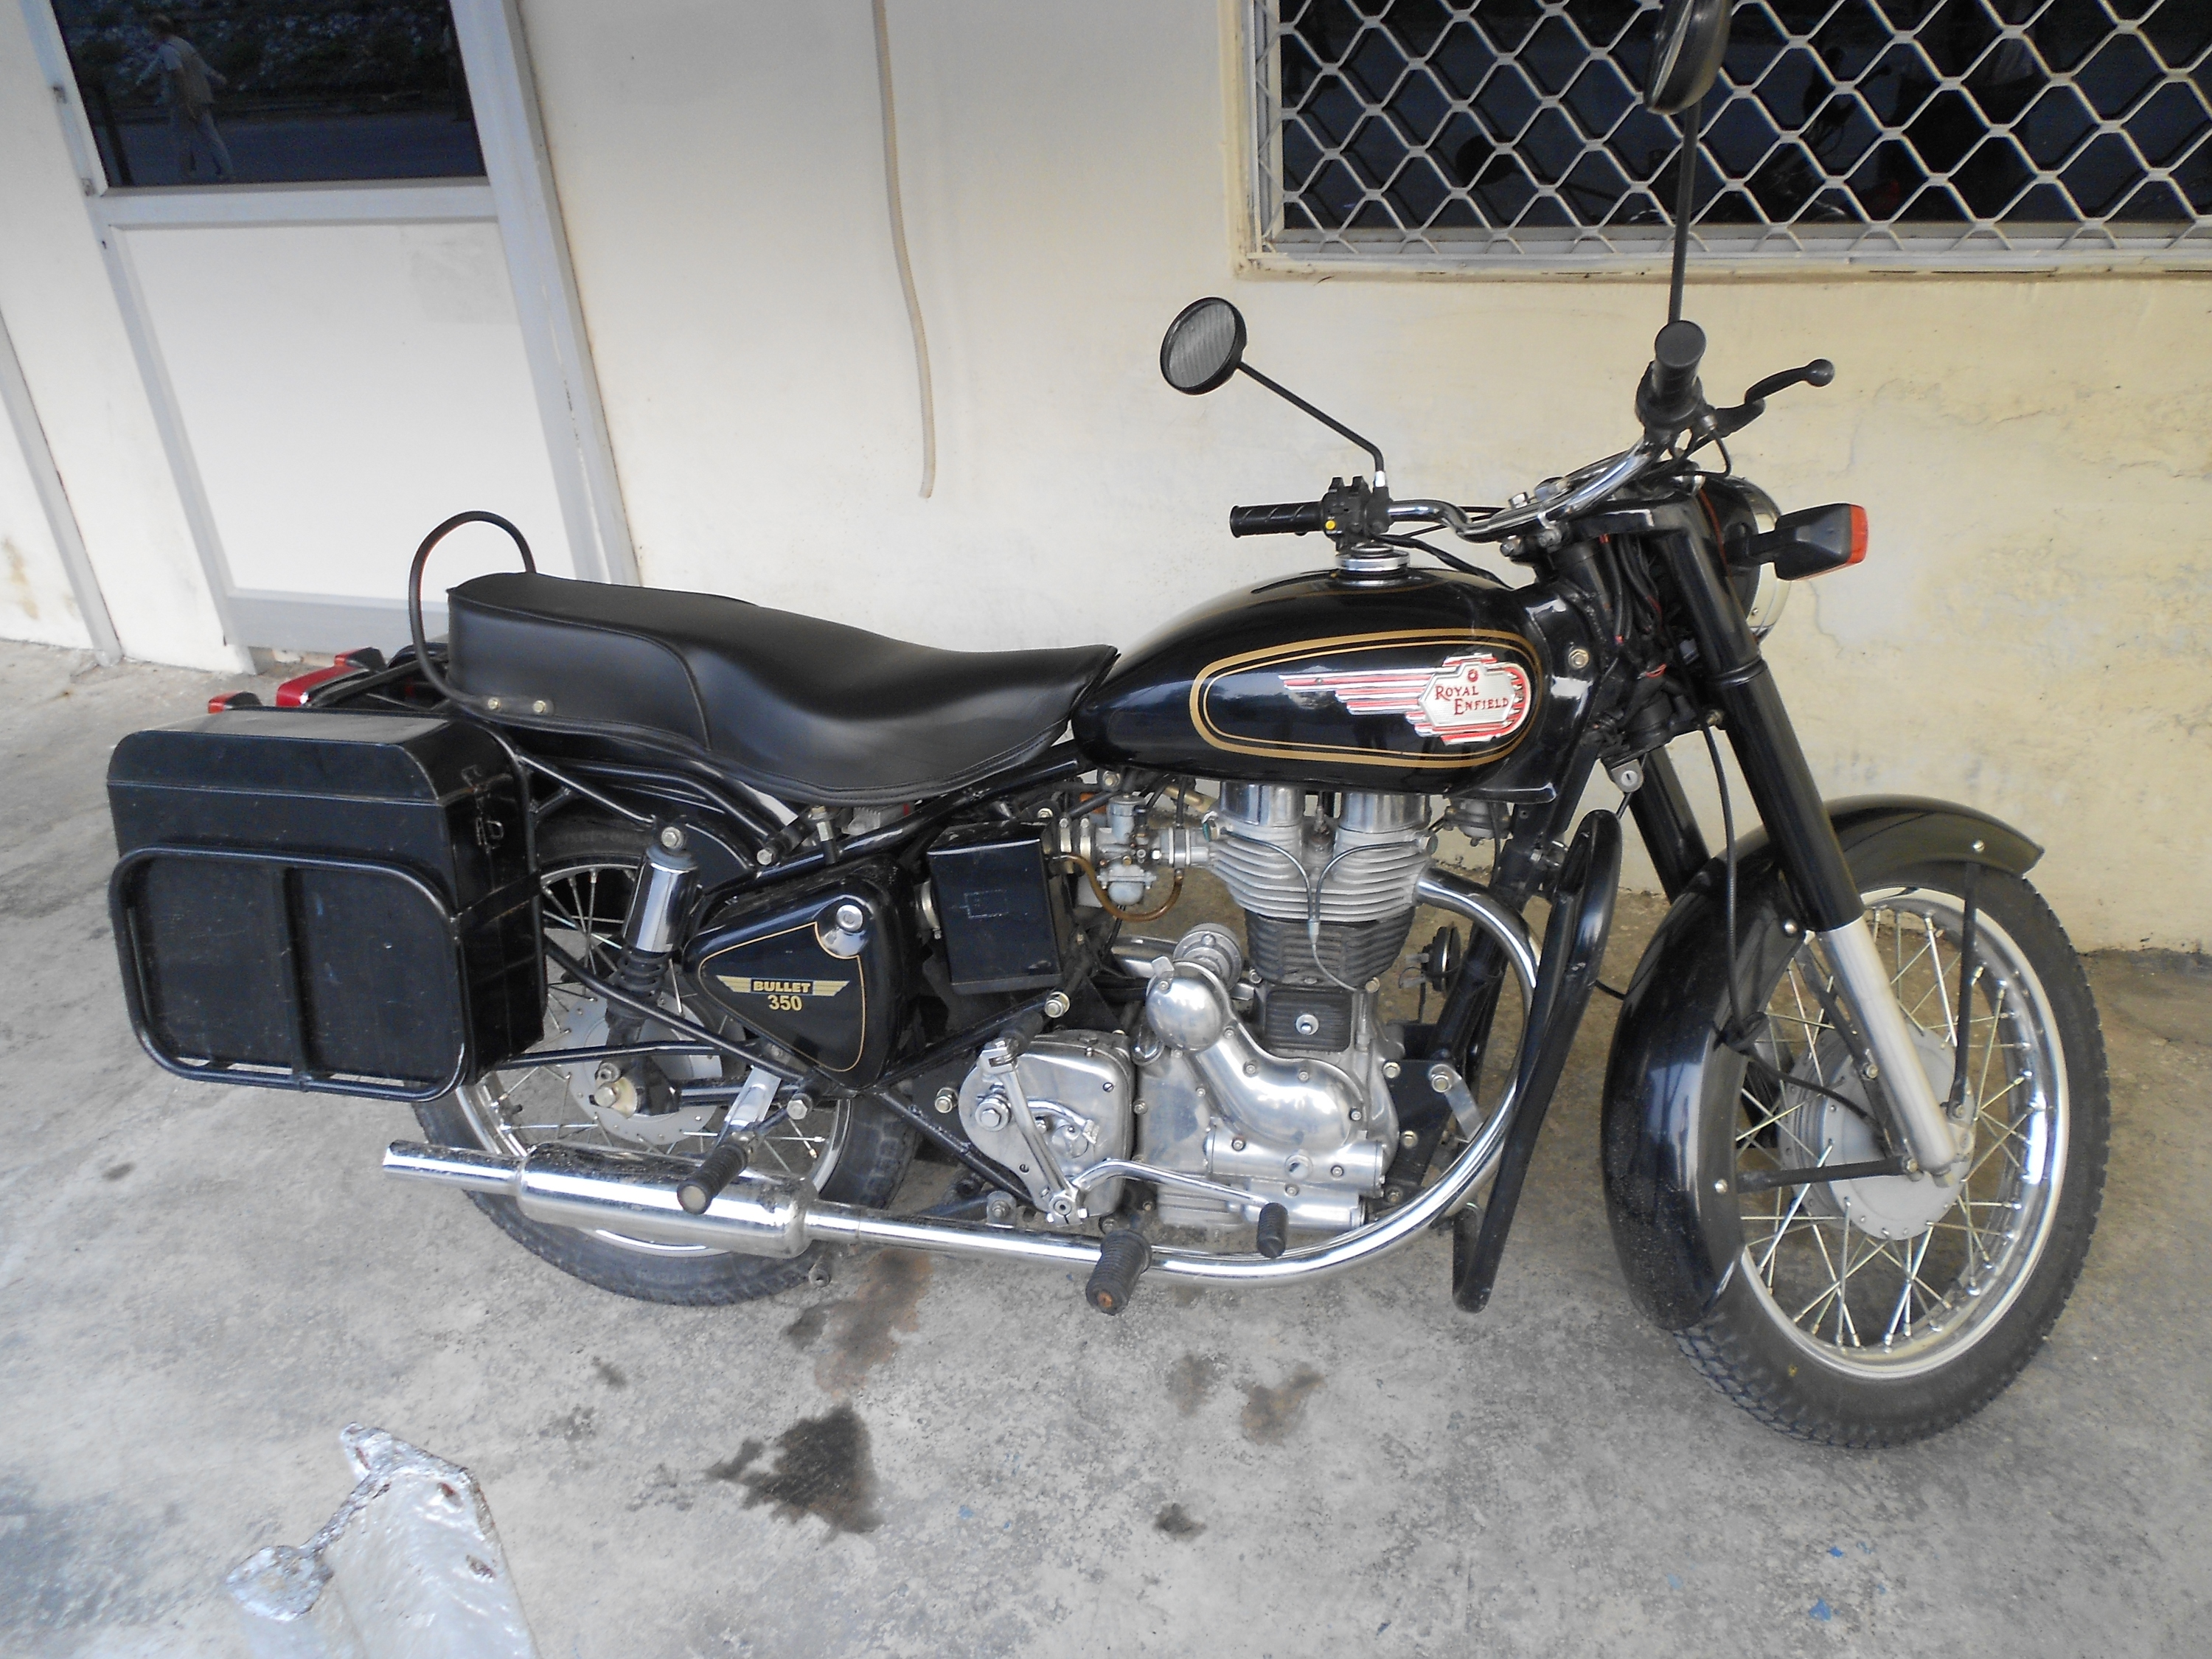 Royal Enfield Bullet 350 Classic 2008 images #123477